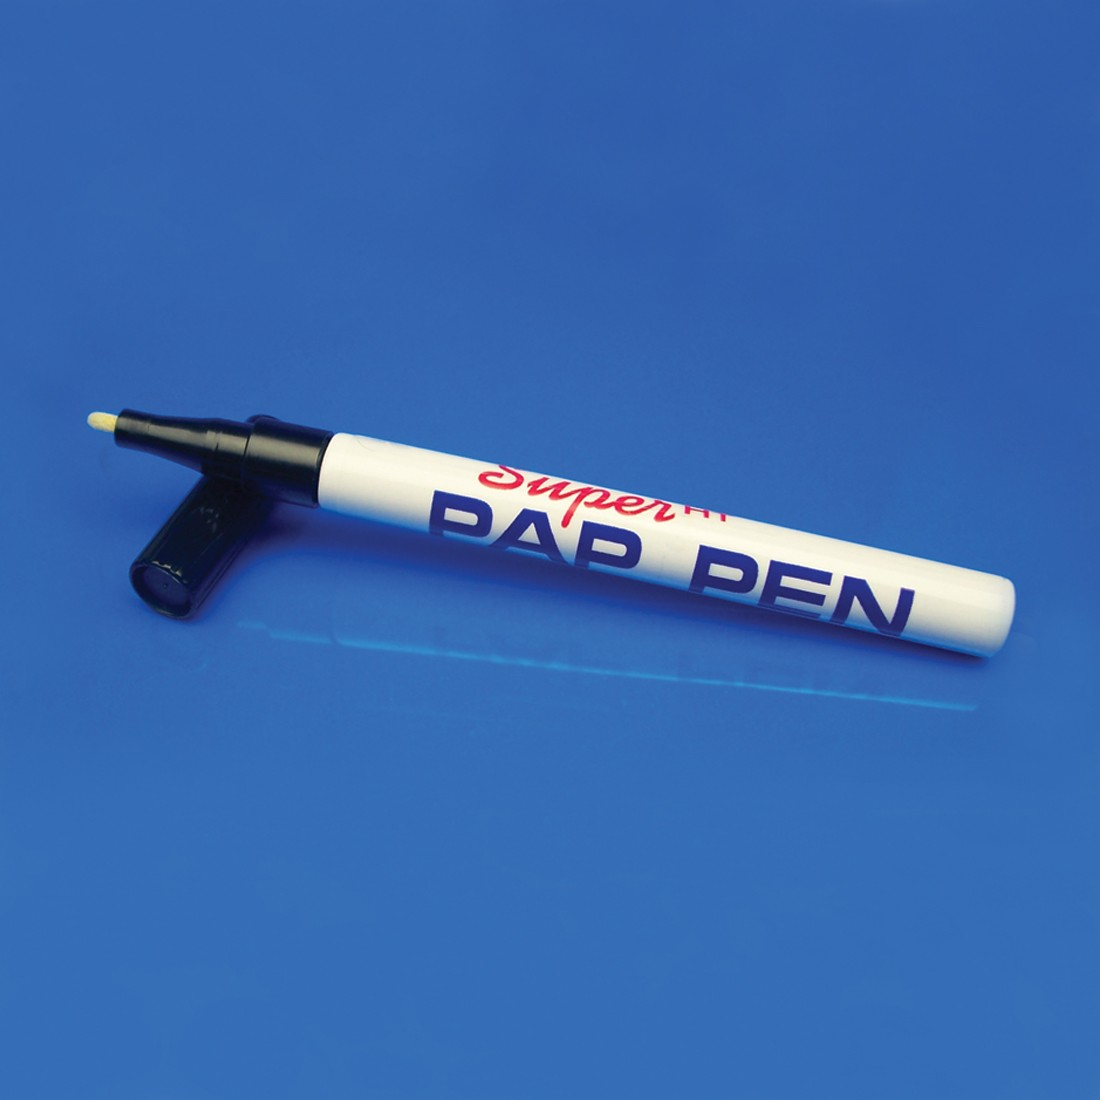 Super PAP Pen, Fine Tip, 2.5mm